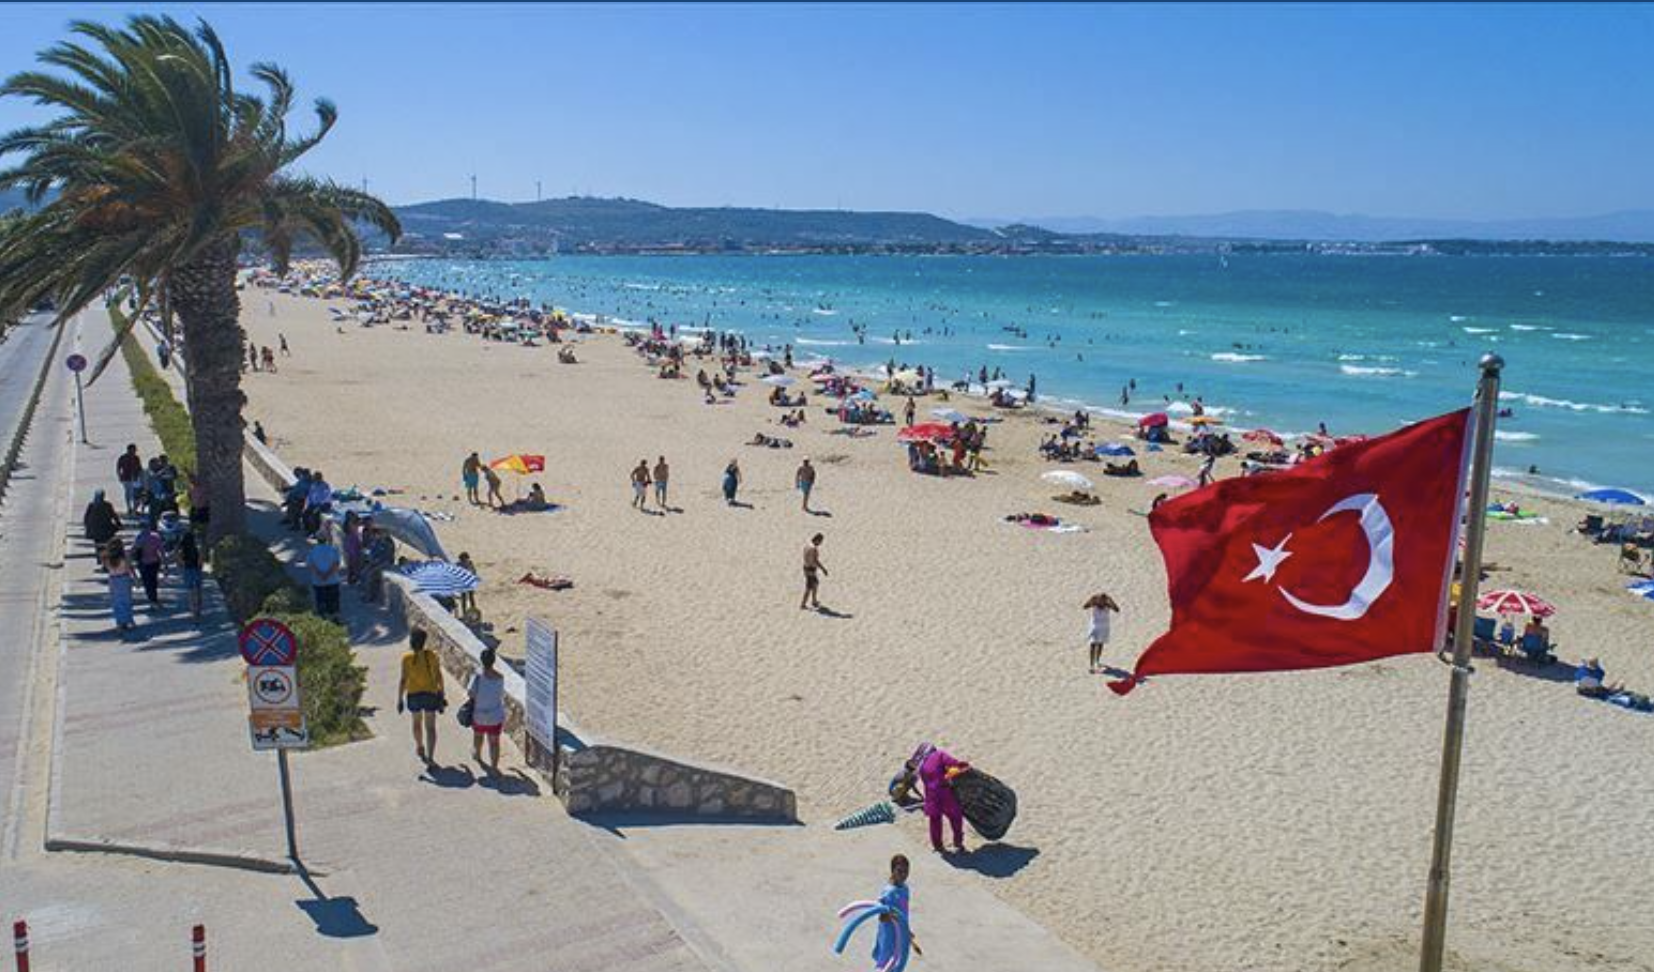 Turkey: Number of tourists expected to double in 2021; Safe Tourism Certification Program considered an advantage